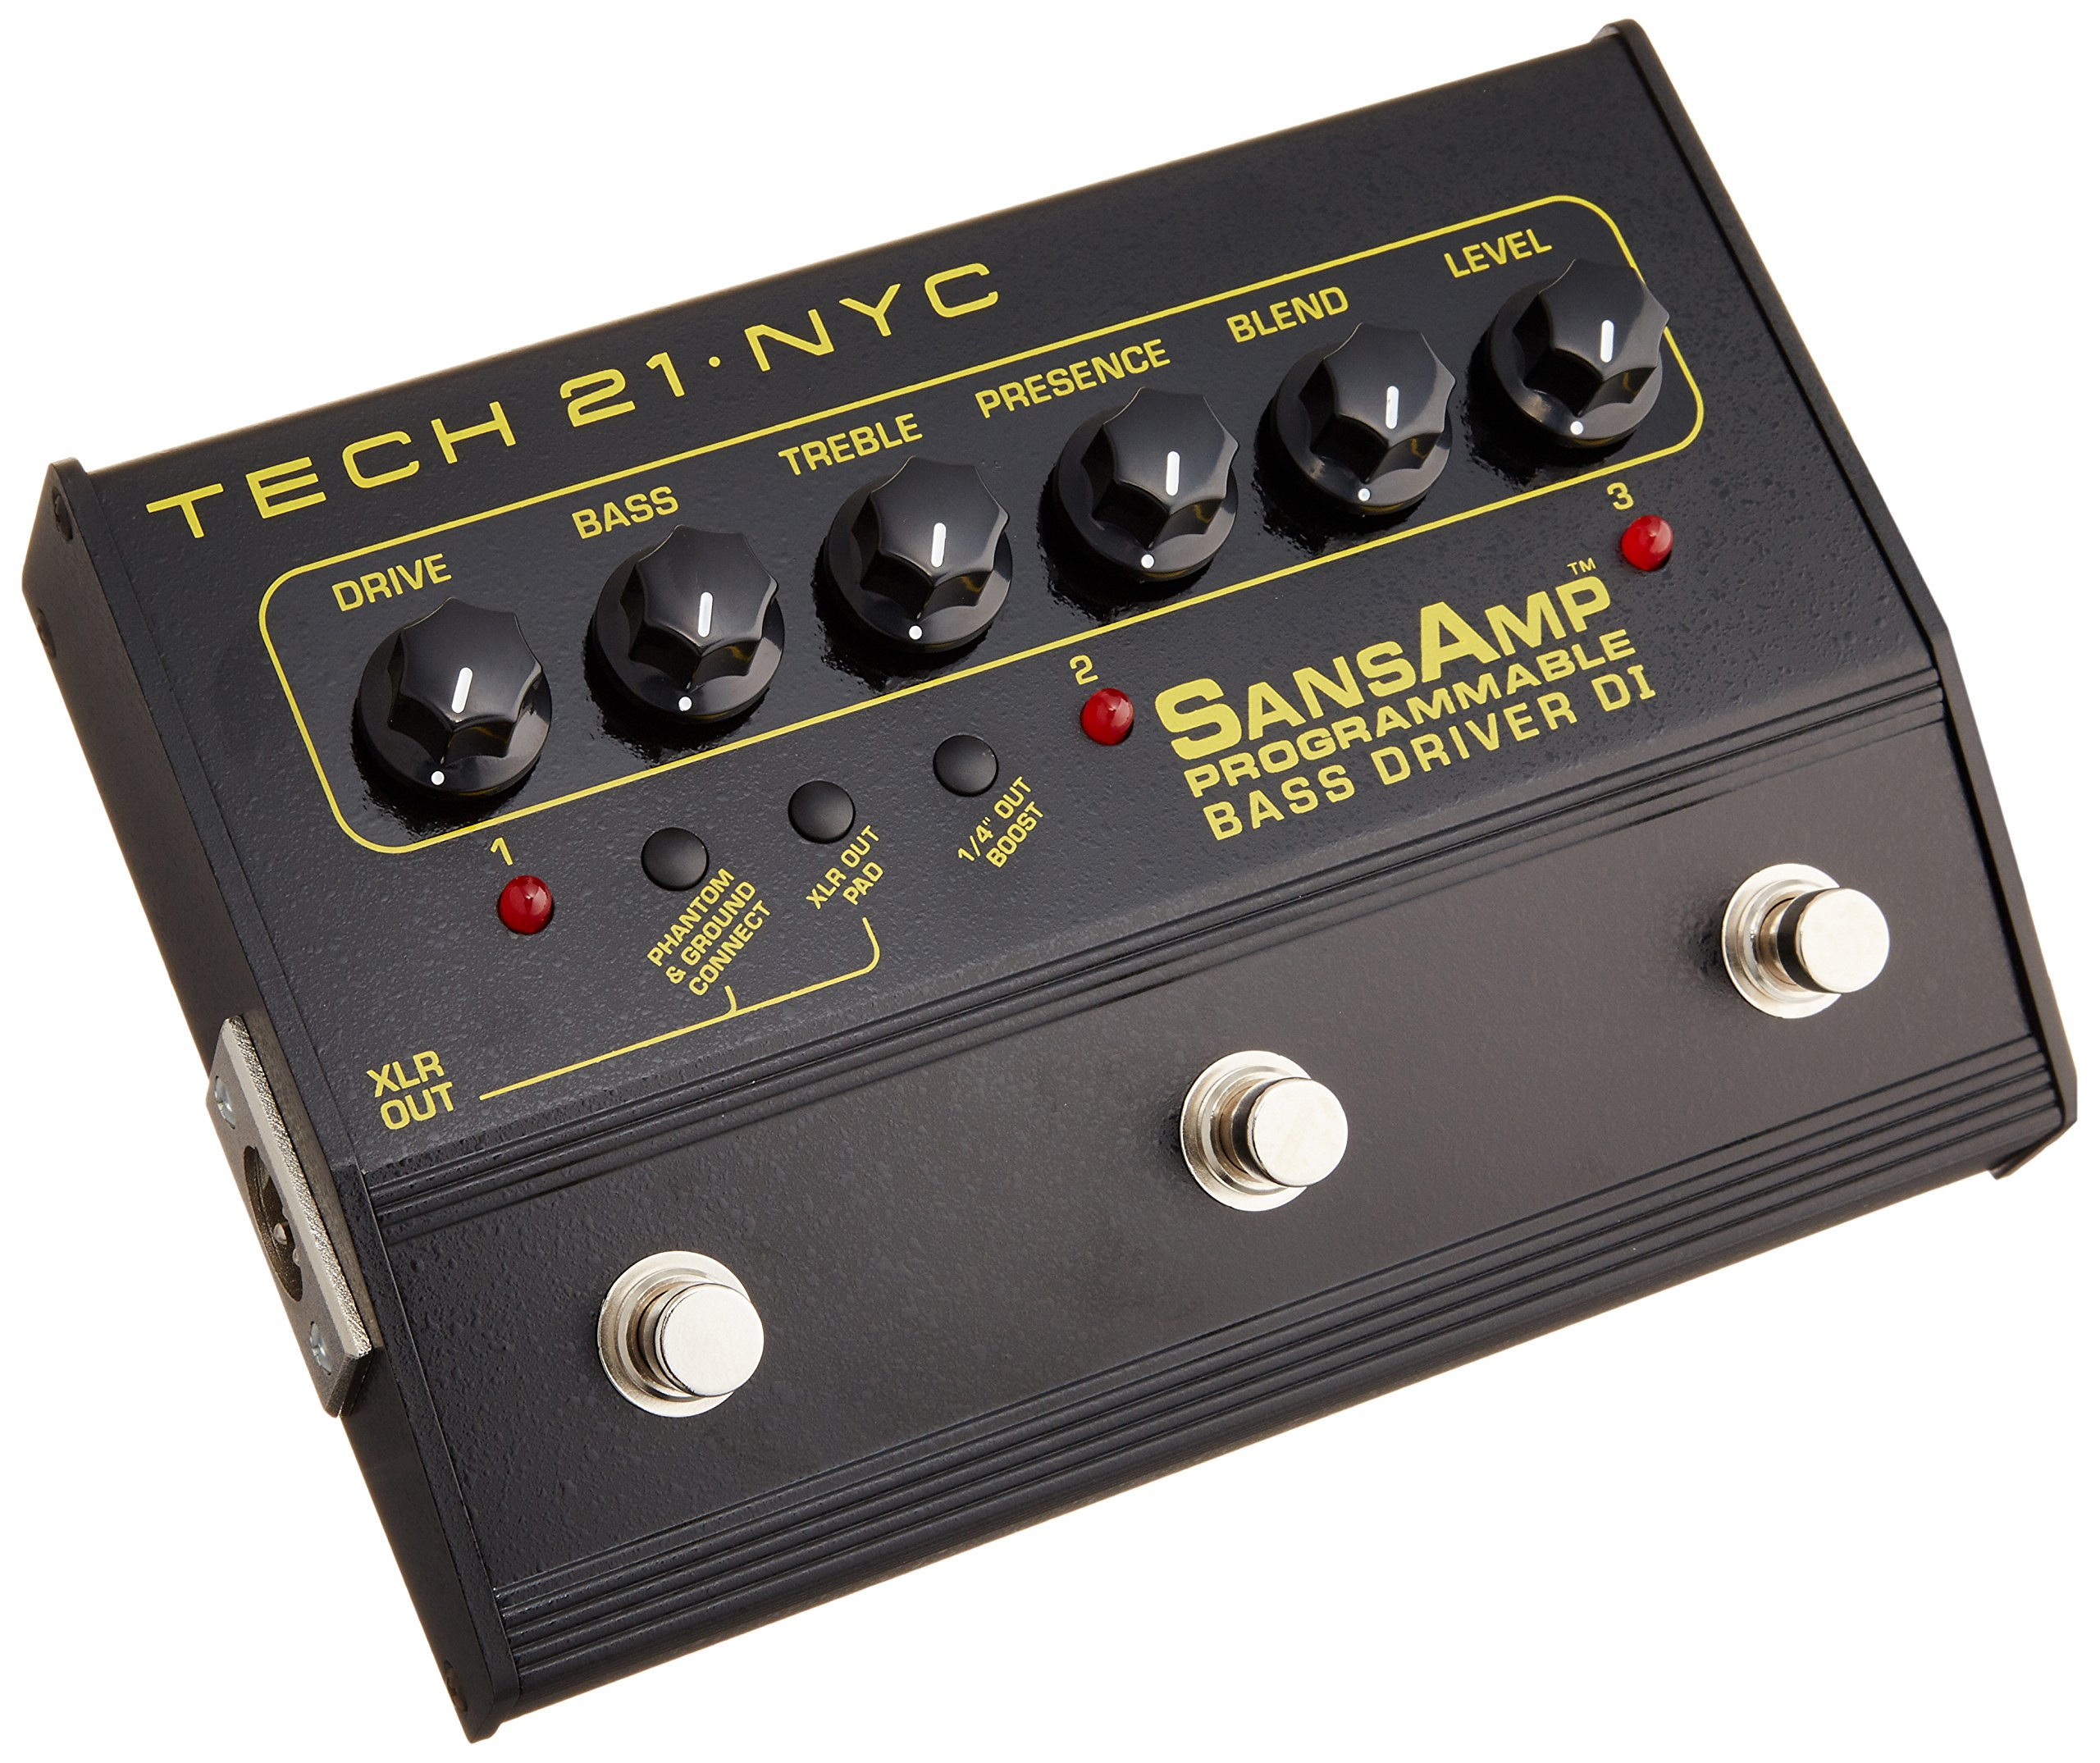 Tech 21 PBDR SansAmp Programmable Bass Driver DI by tech21